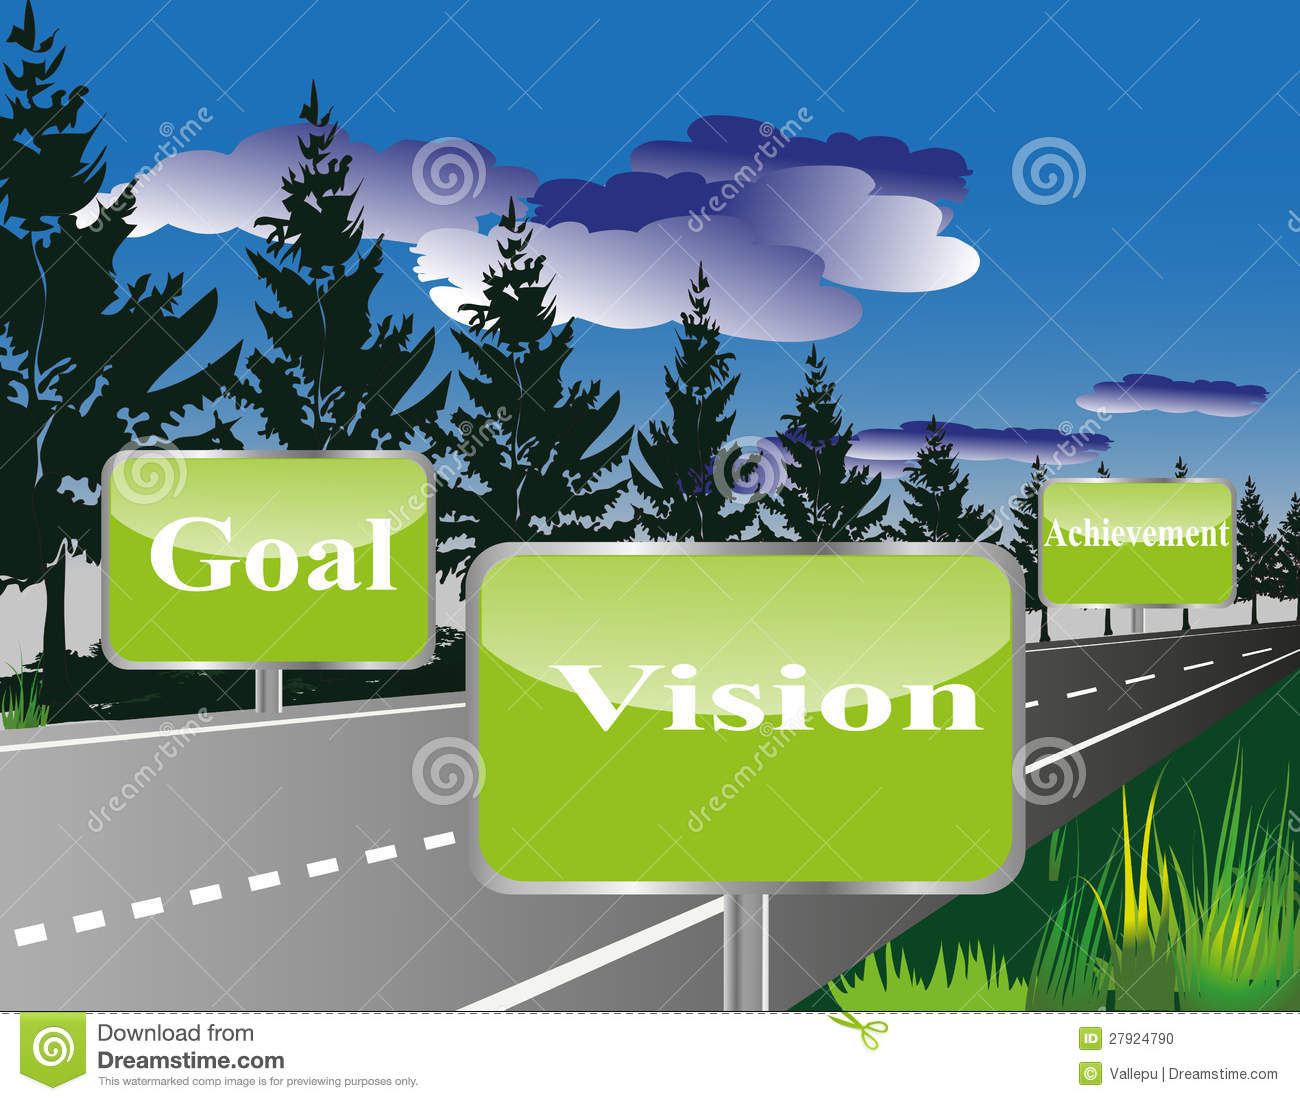 Business Roadmap Or Vision Or Goal Or Achievement Stock